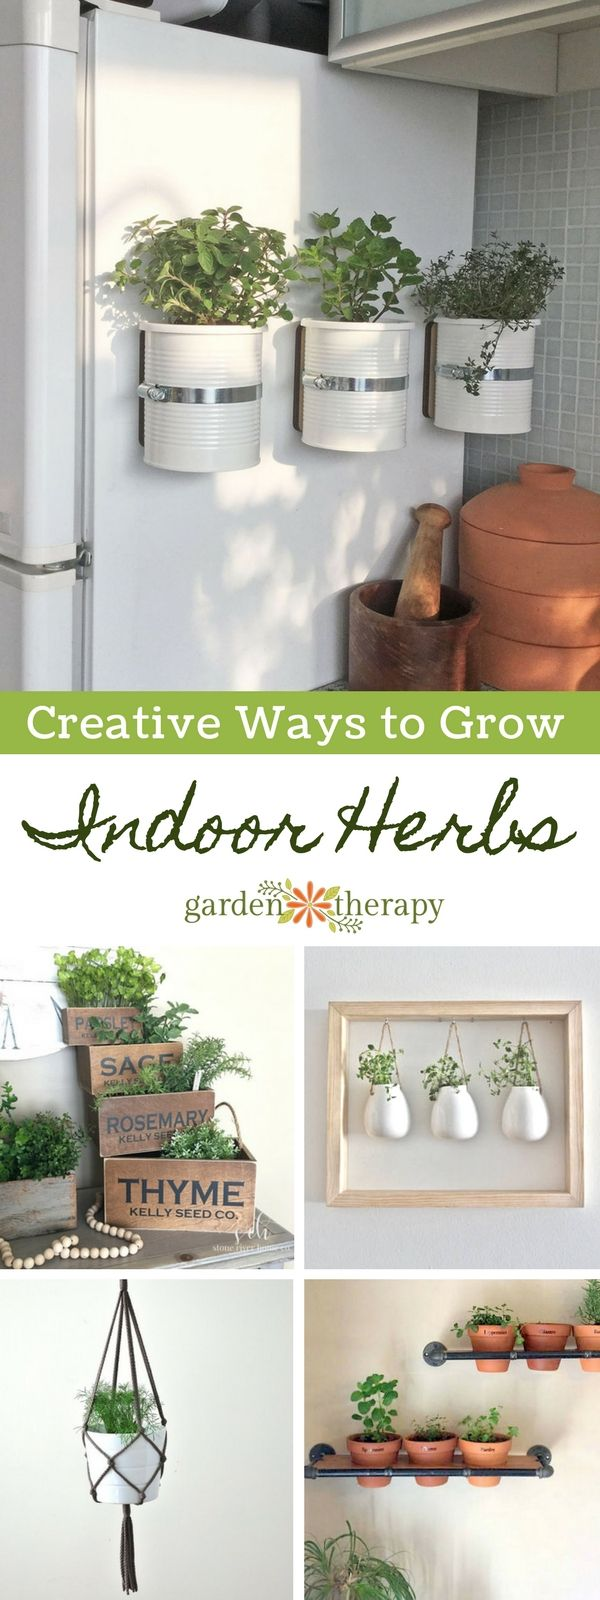 Find the Best Indoor Herb Garden for Any Space. Many herbs overwinter best indoo...